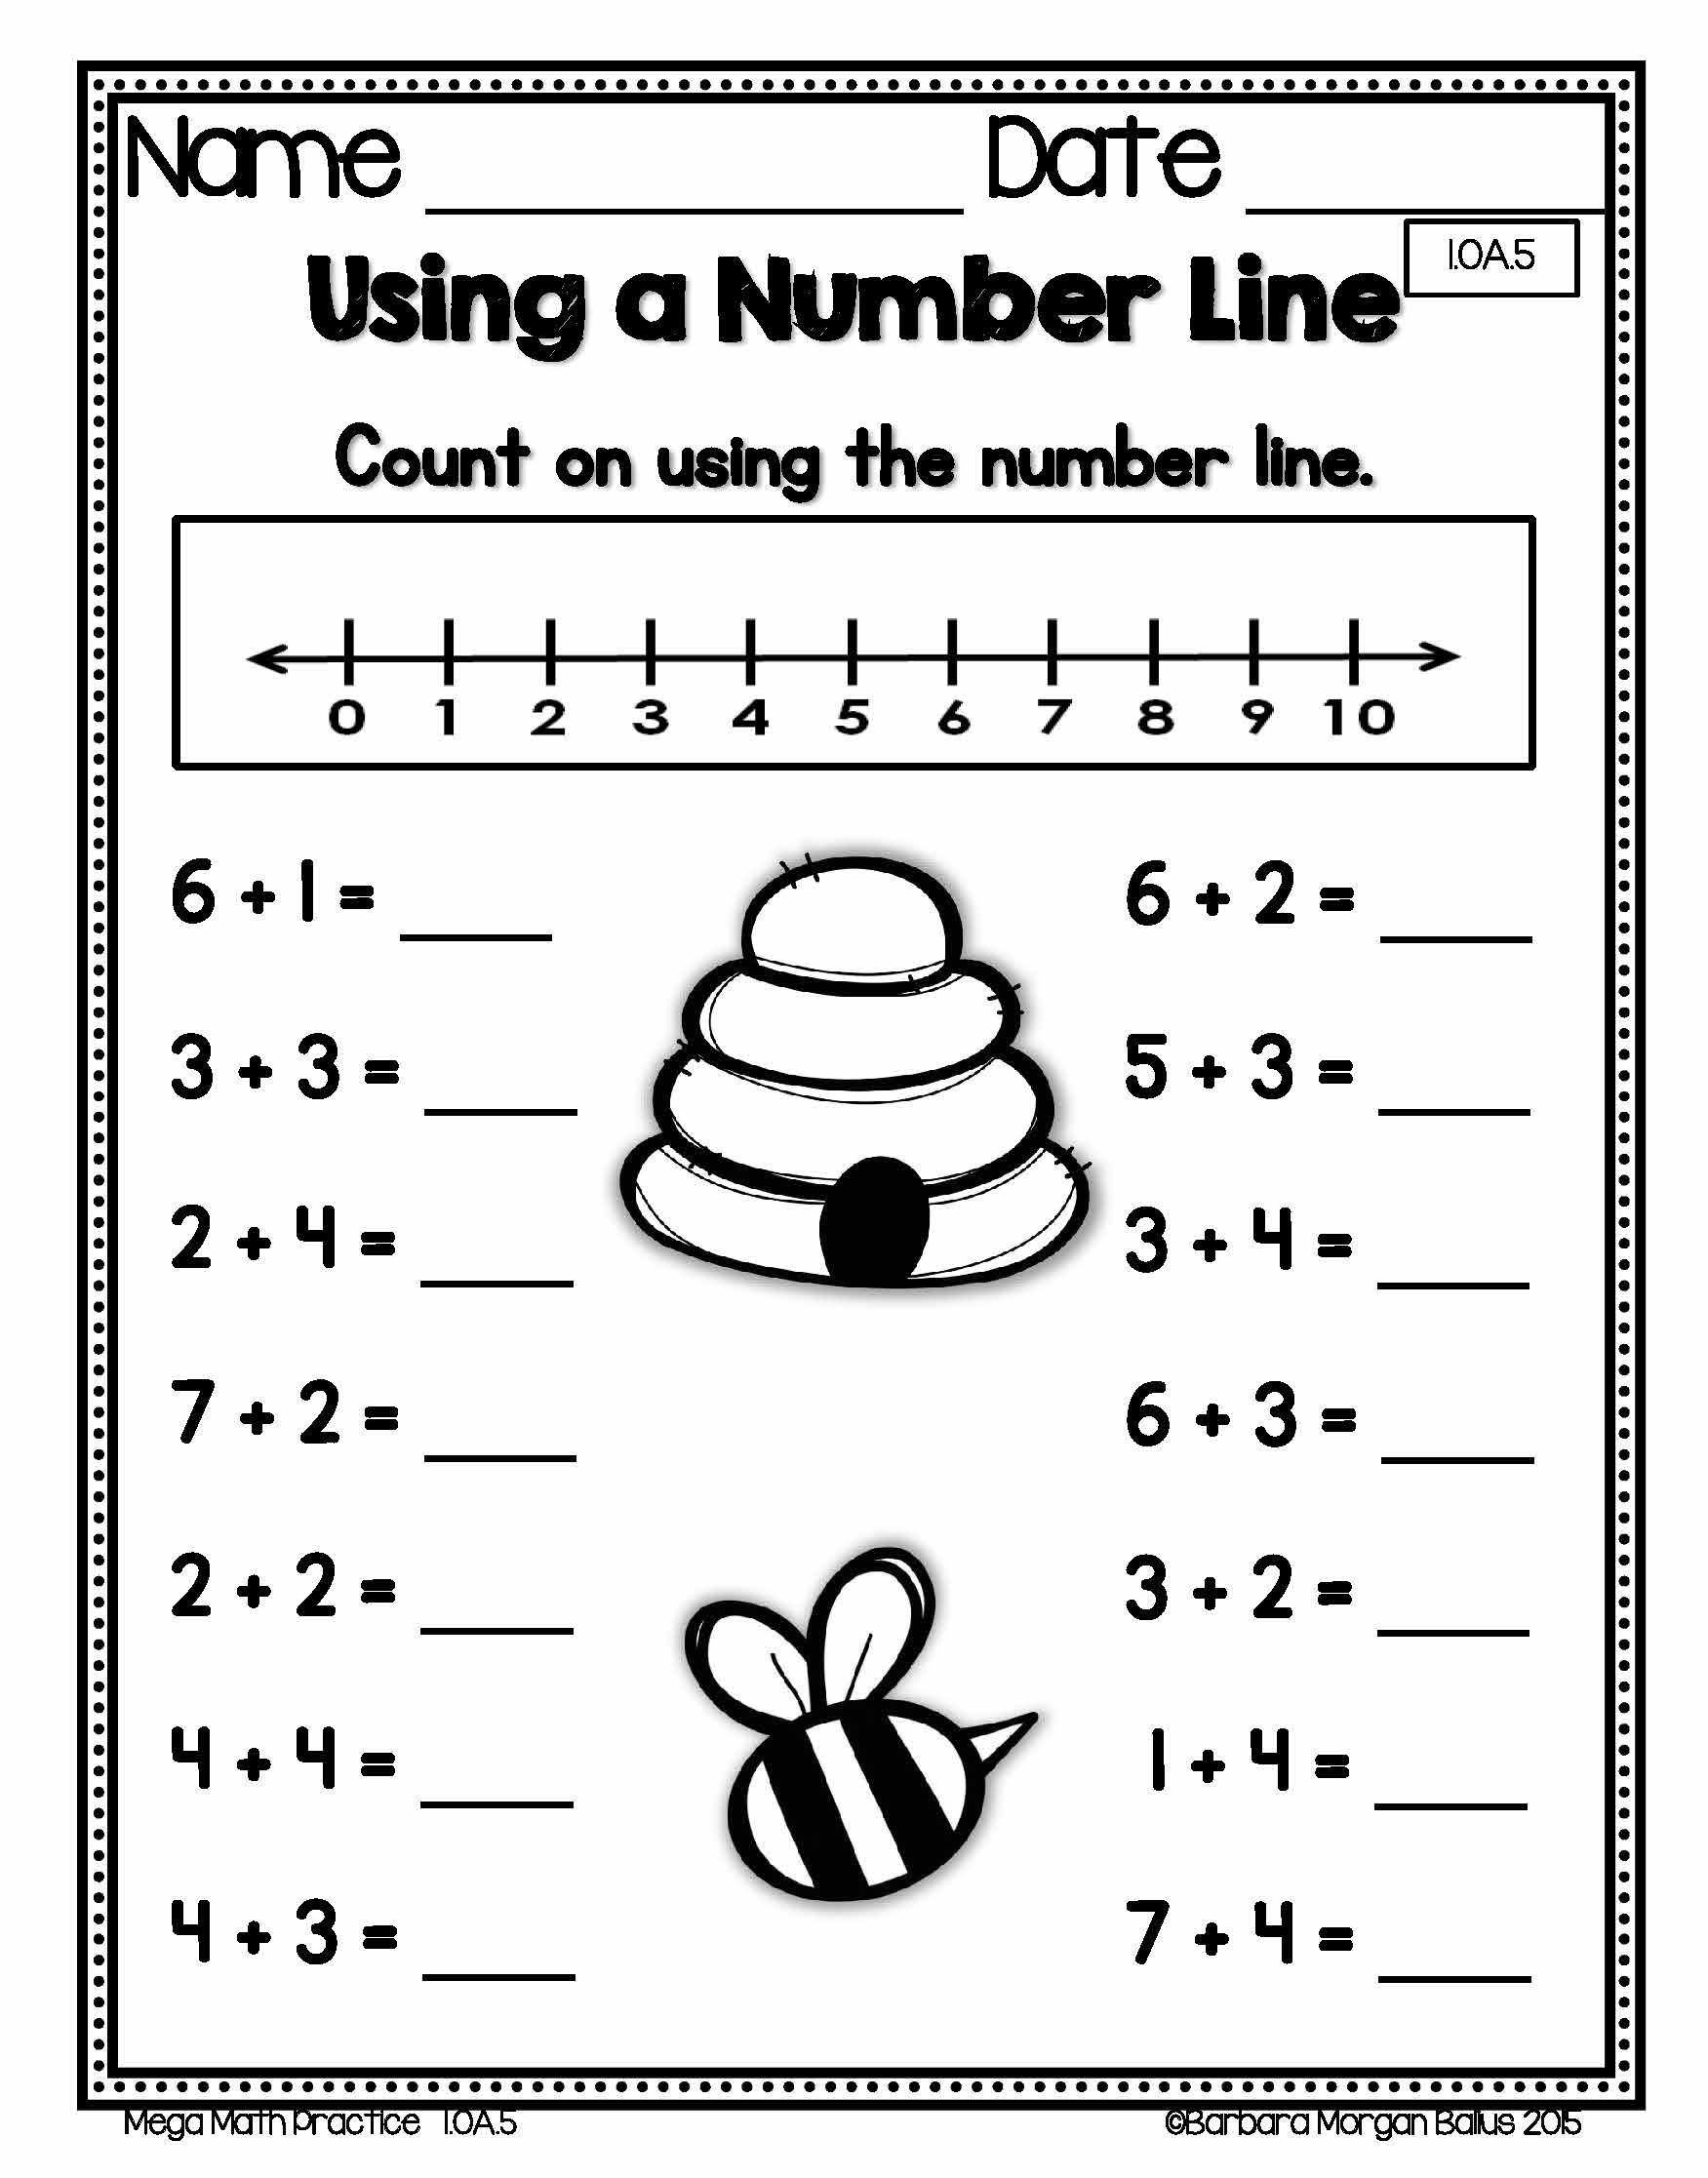 Worksheet 1st Grade Number Line free number line addition worksheets first grade math using a practice common core standard 1 oa